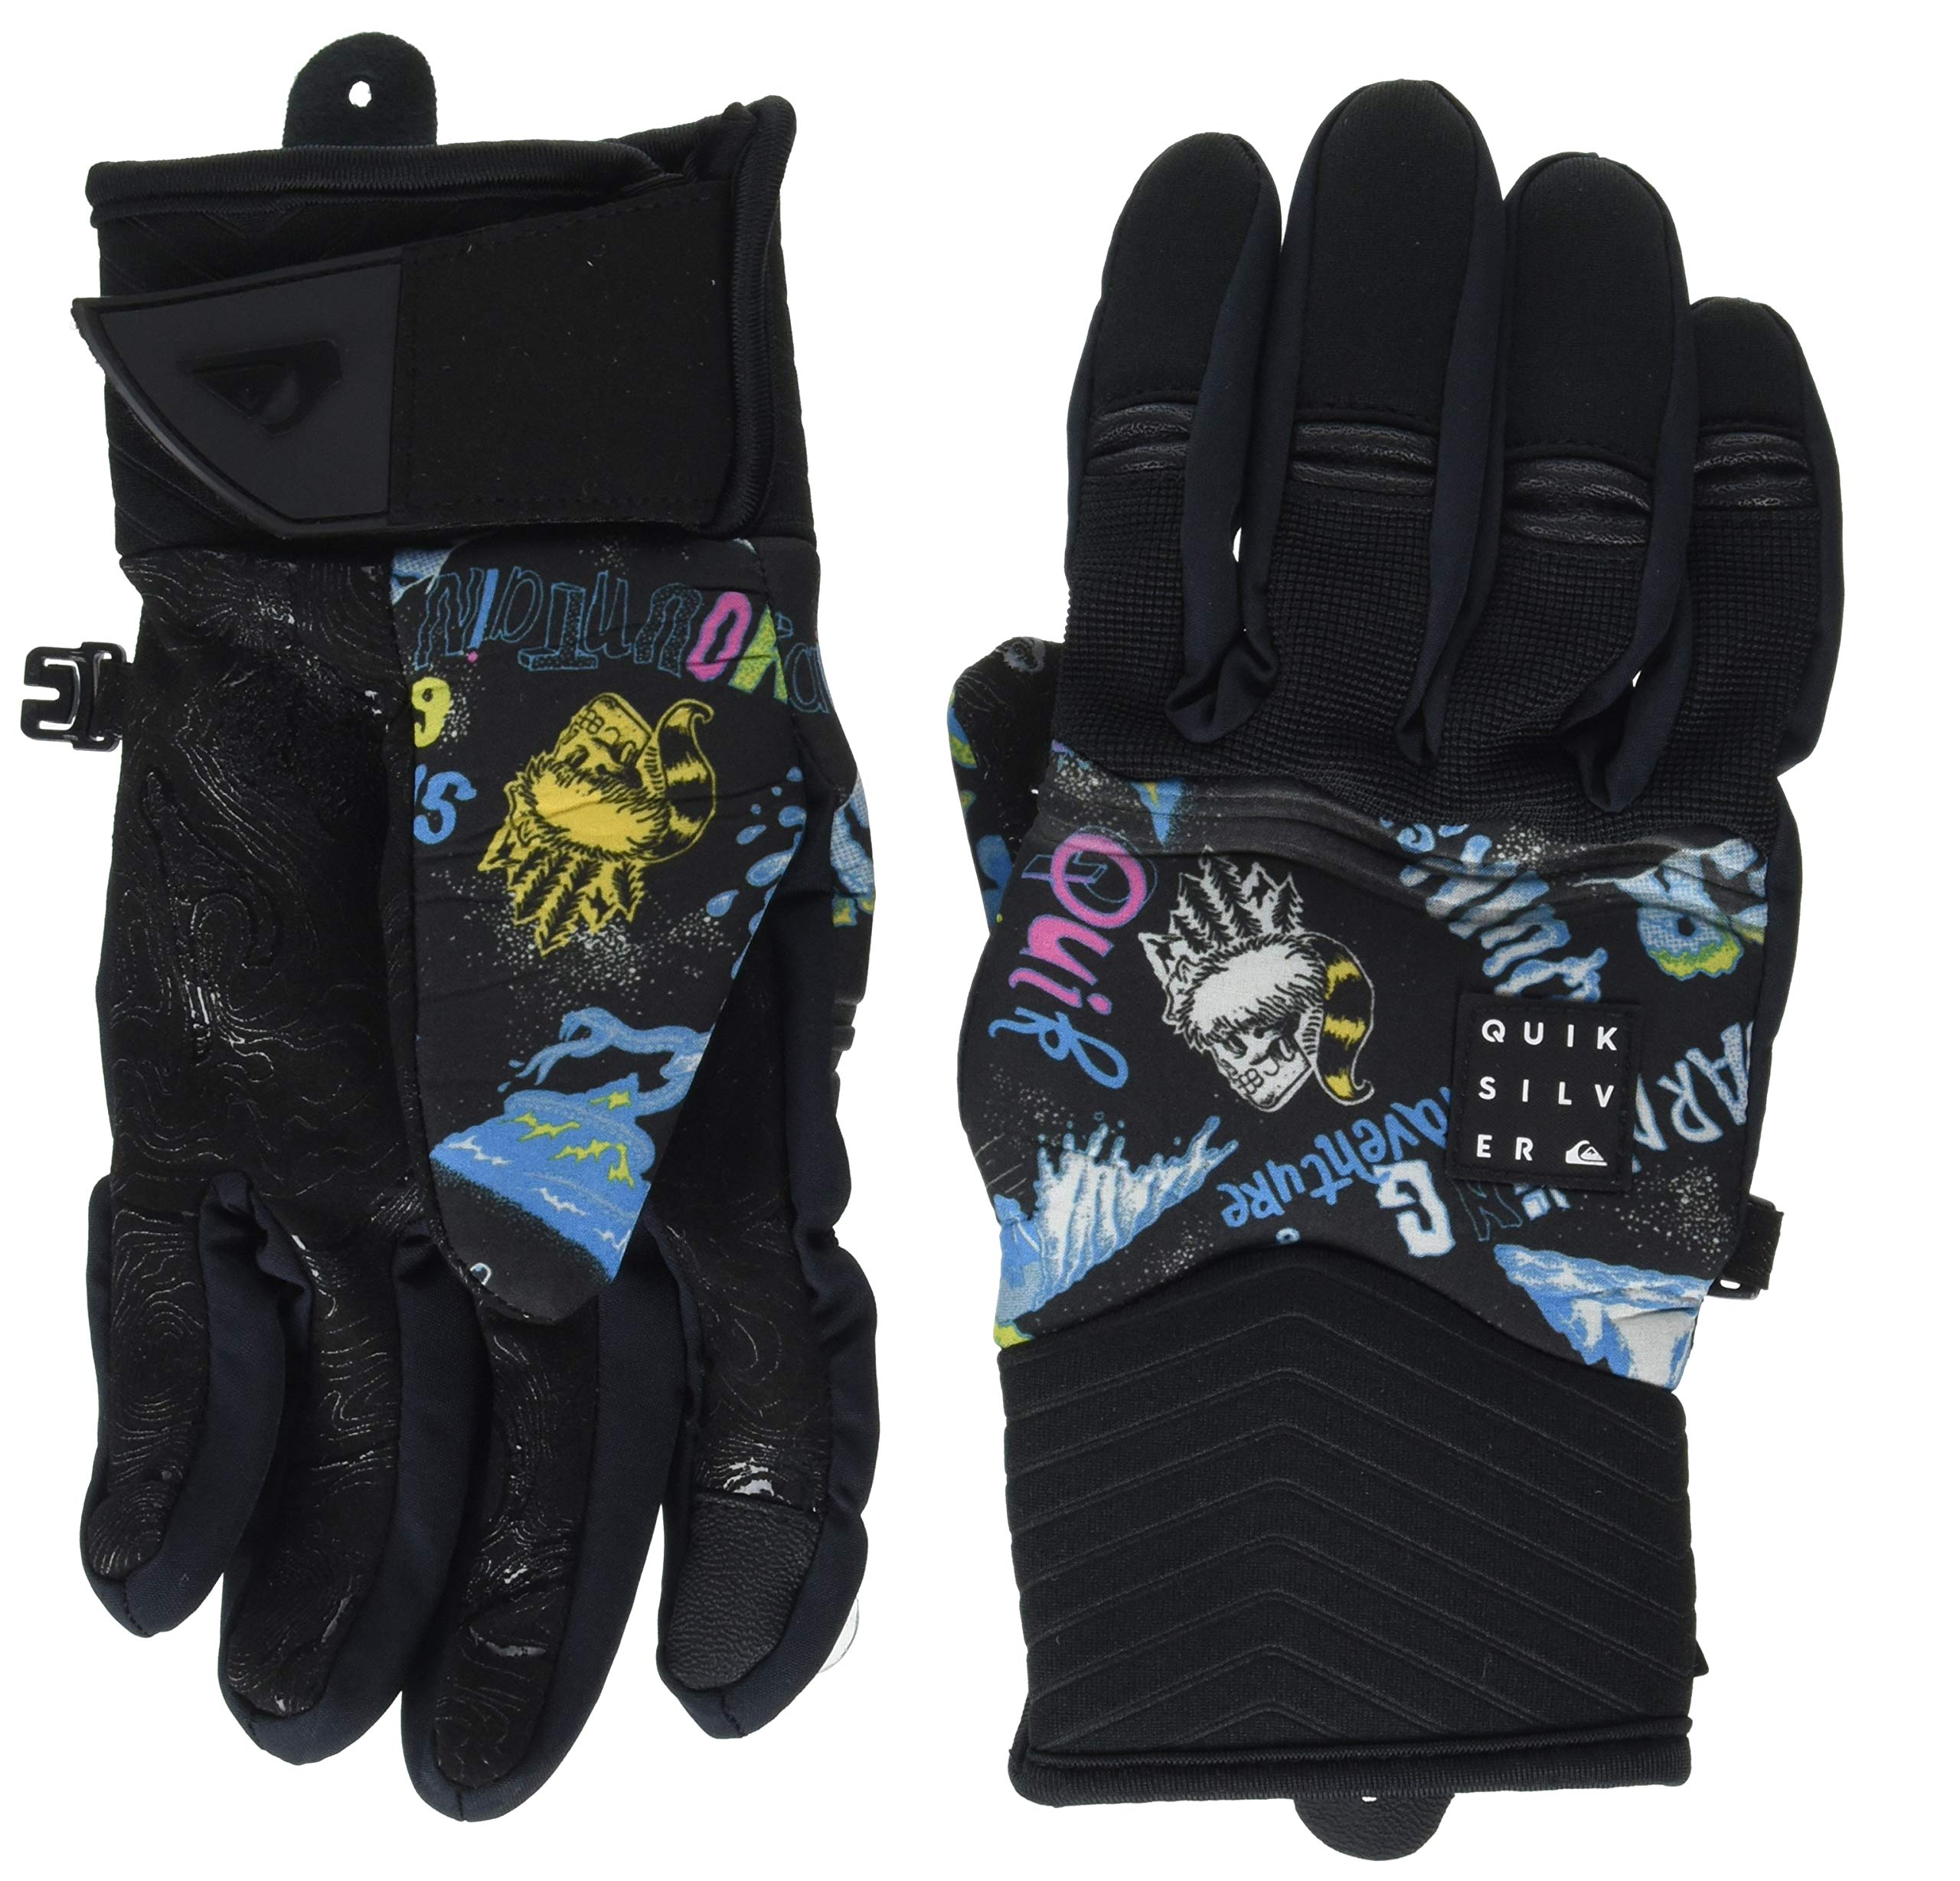 Quiksilver Boys' Big Method Youth TECH Snow Glove, Daphne Blue a Day at The Mount, M by Quiksilver